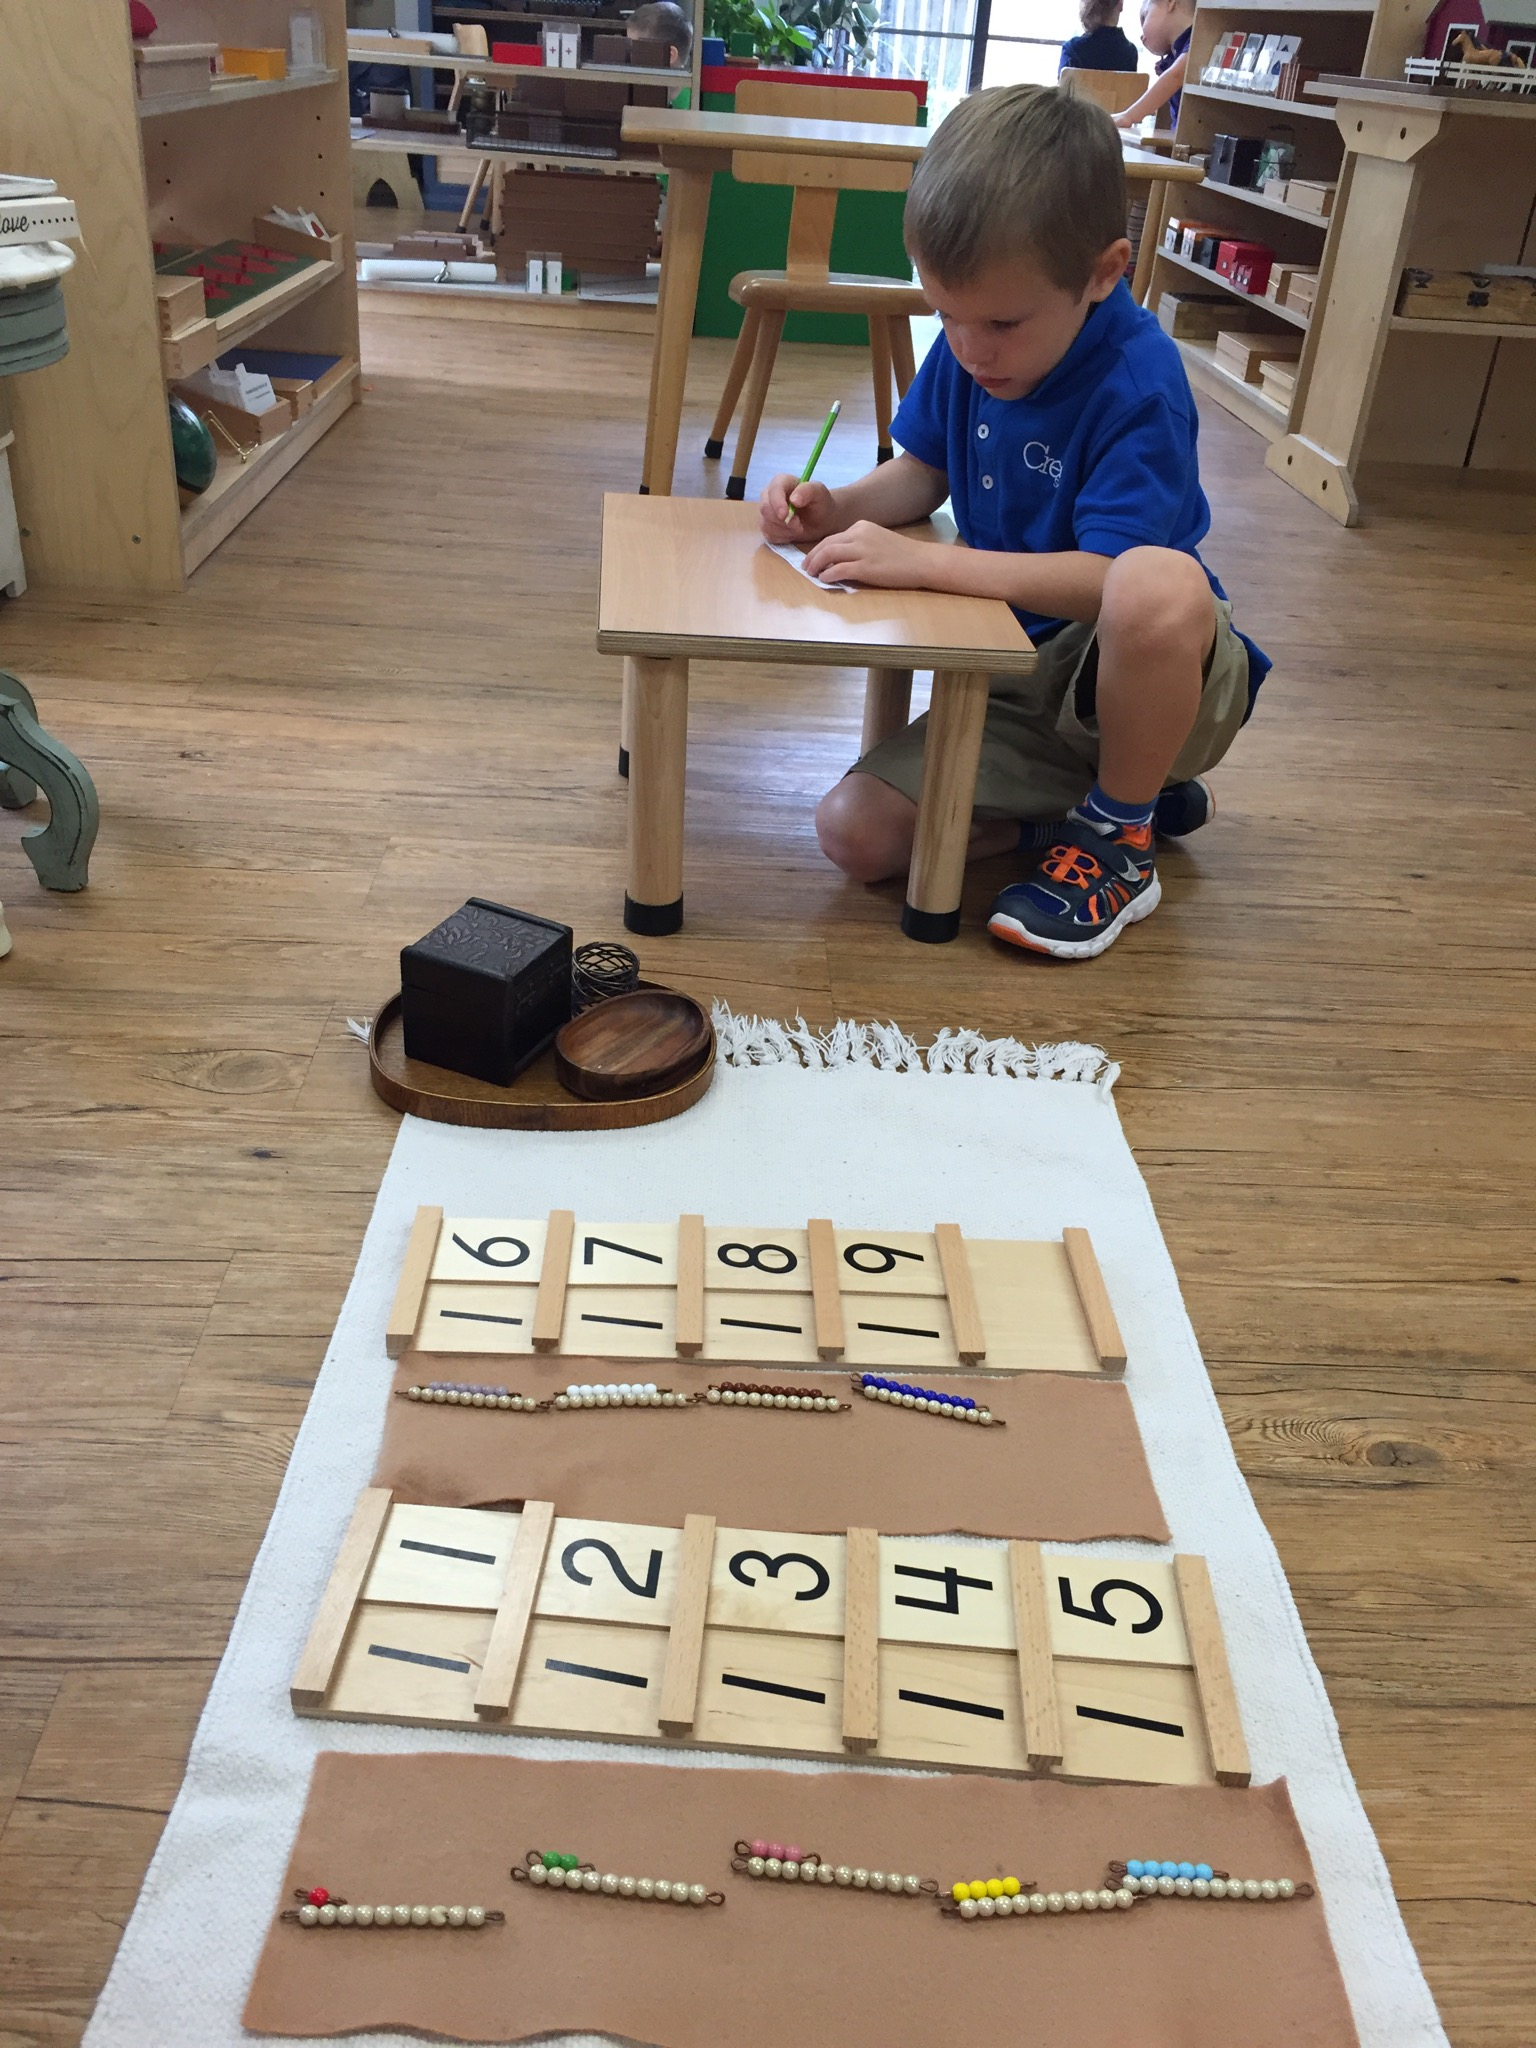 Association of beads and cards, Making teen numbers and writing on paper